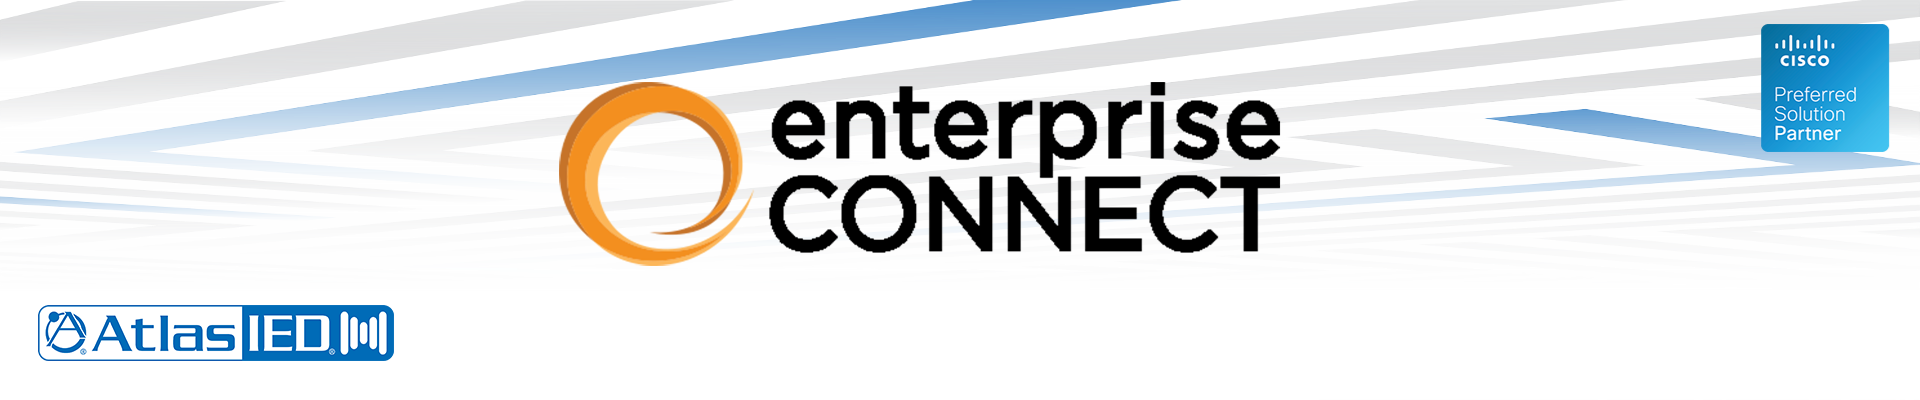 AtlasIED IPX Endpoints Deliver Smart Communications Over IT Infrastructure